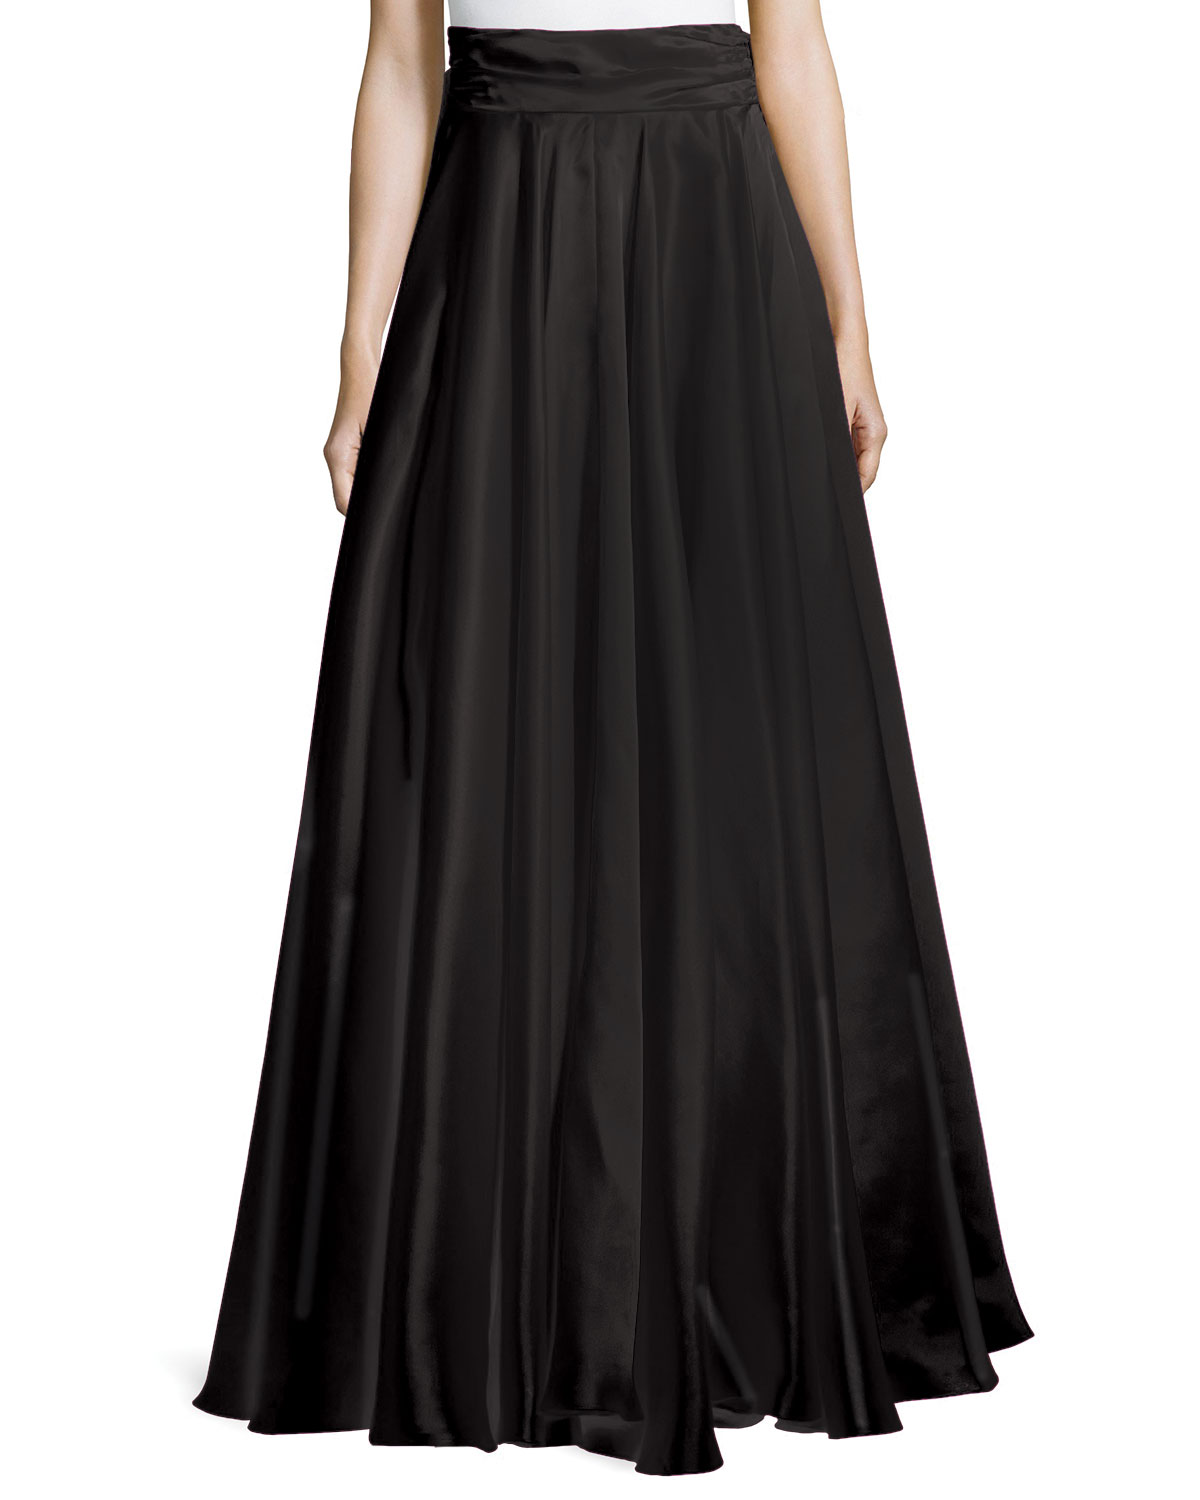 Bow-Back Silk Maxi Skirt, Size: 0, Black - Milly